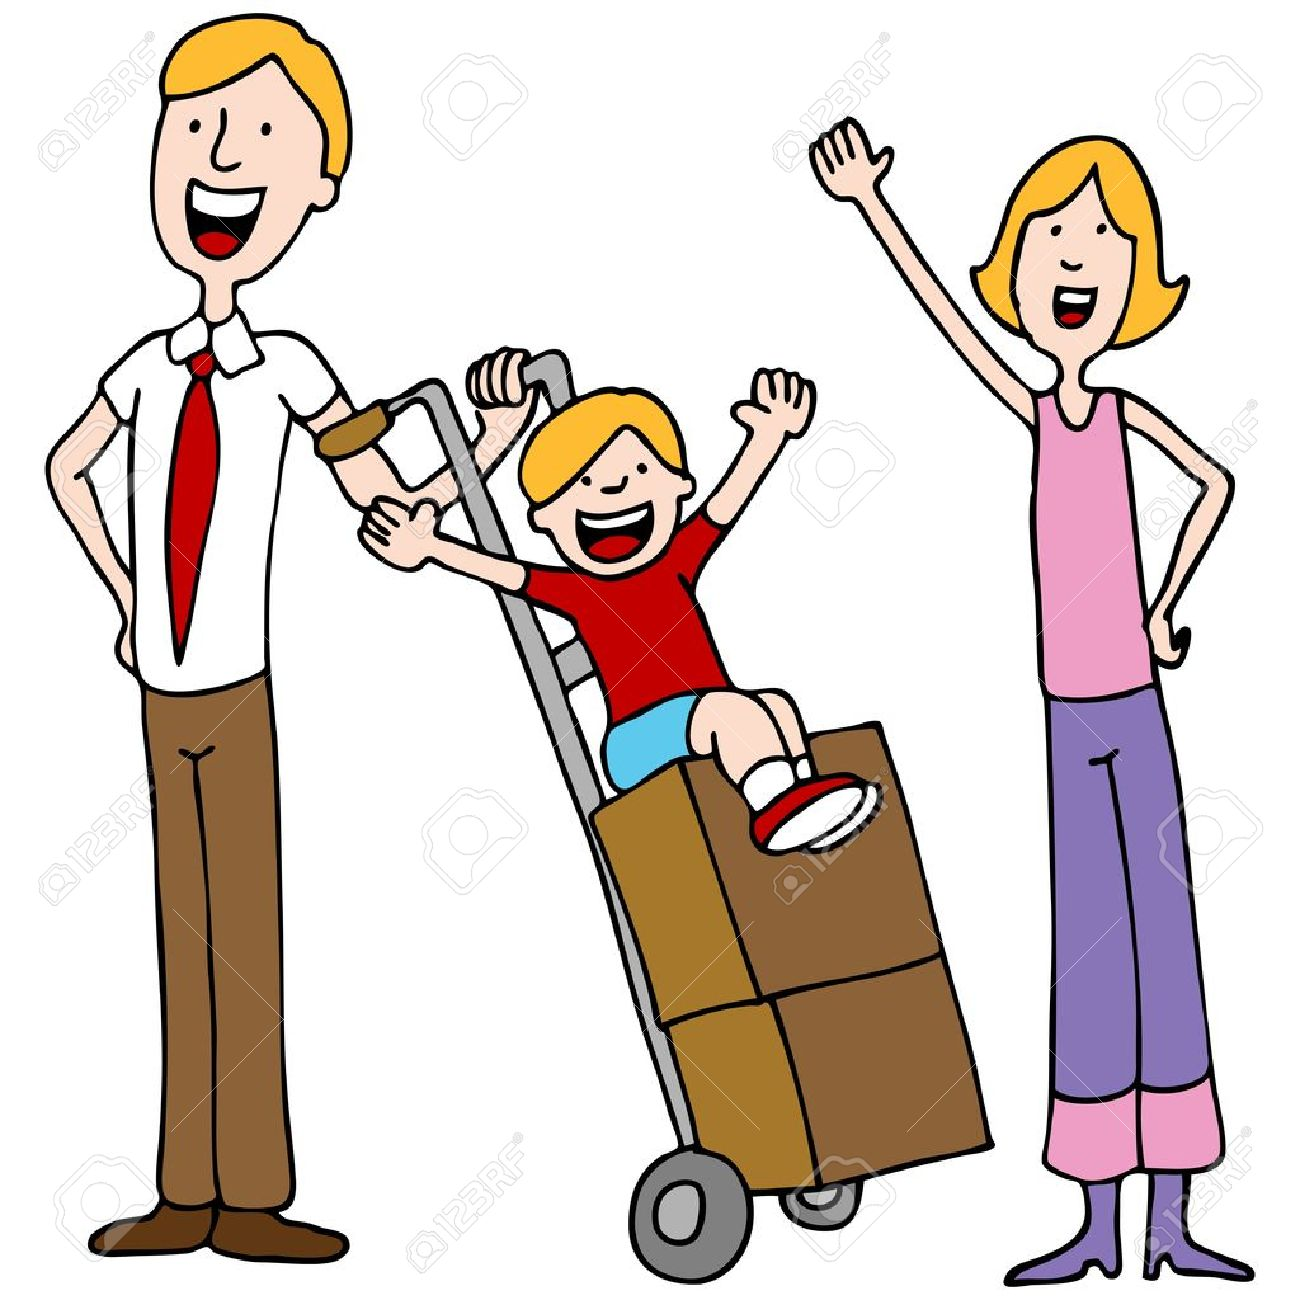 An image of a family getting ready to move. Stock Vector - 10787475